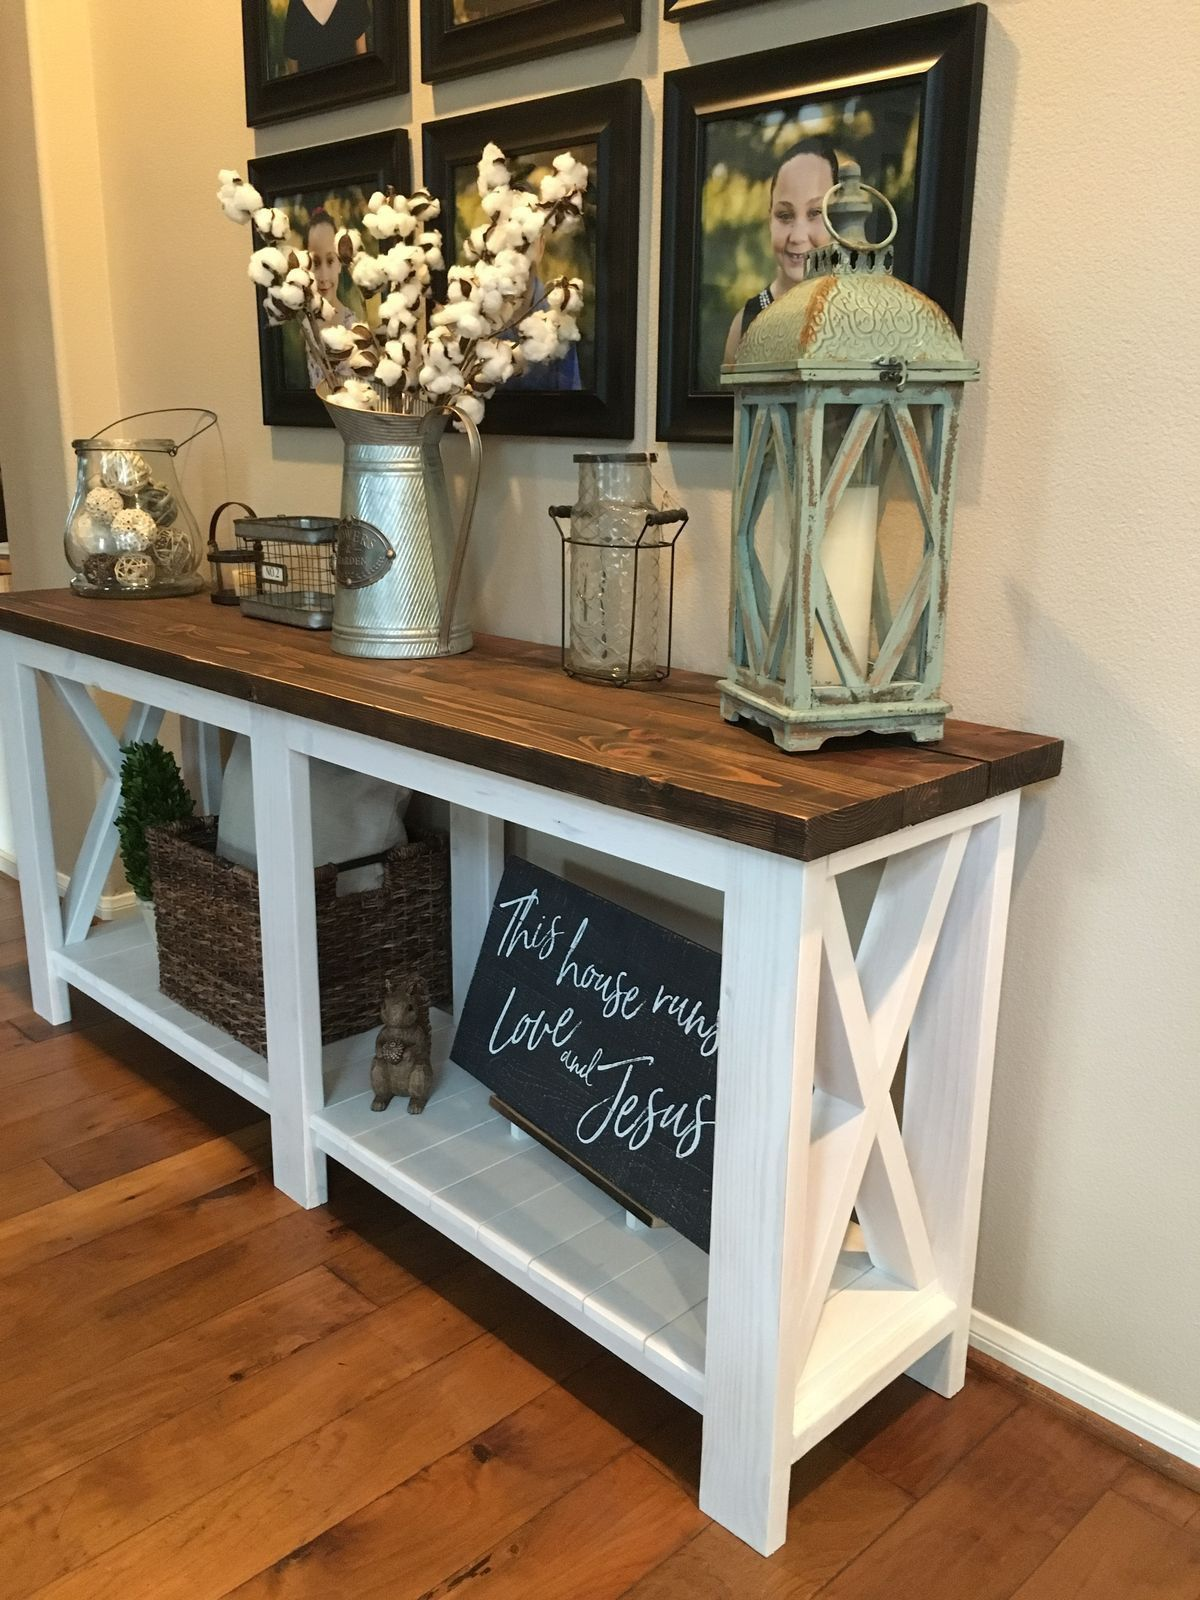 Pin by Kathy Swanson on Jaime Entry table decor